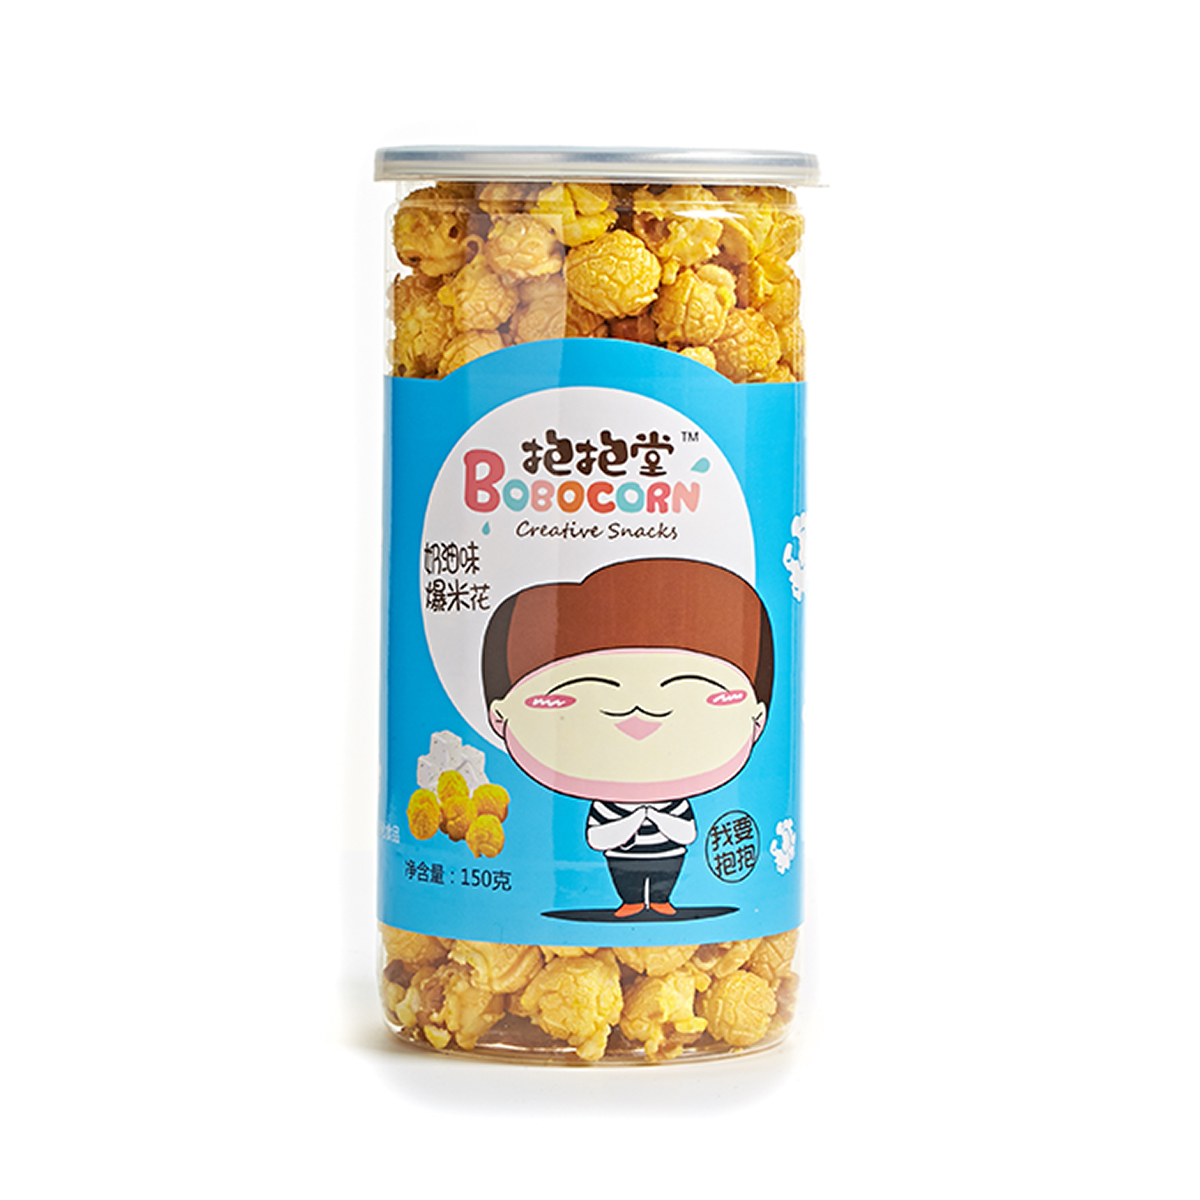 Pets live the same paragraph hug chinese fire popcorn ball hall creamy snack 150g * 1 cans